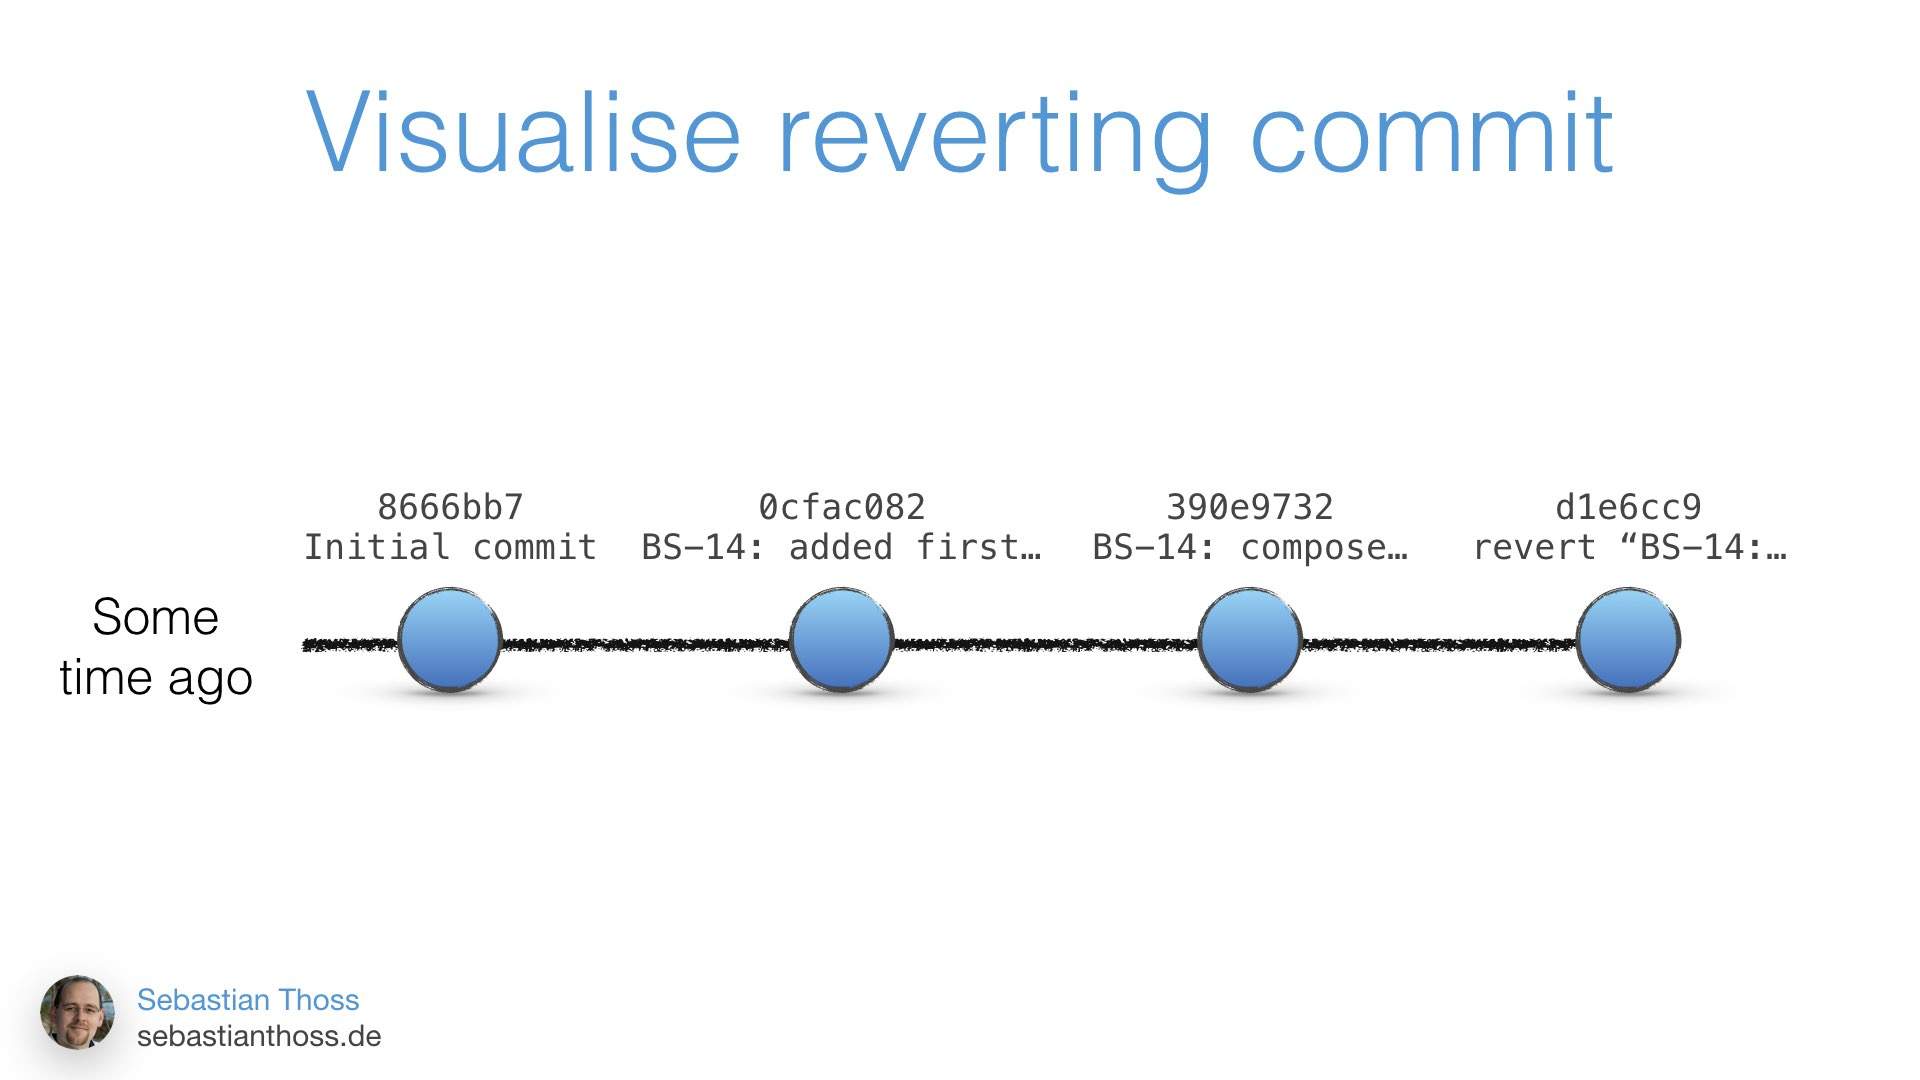 this slide shows how reverting a commit will look like